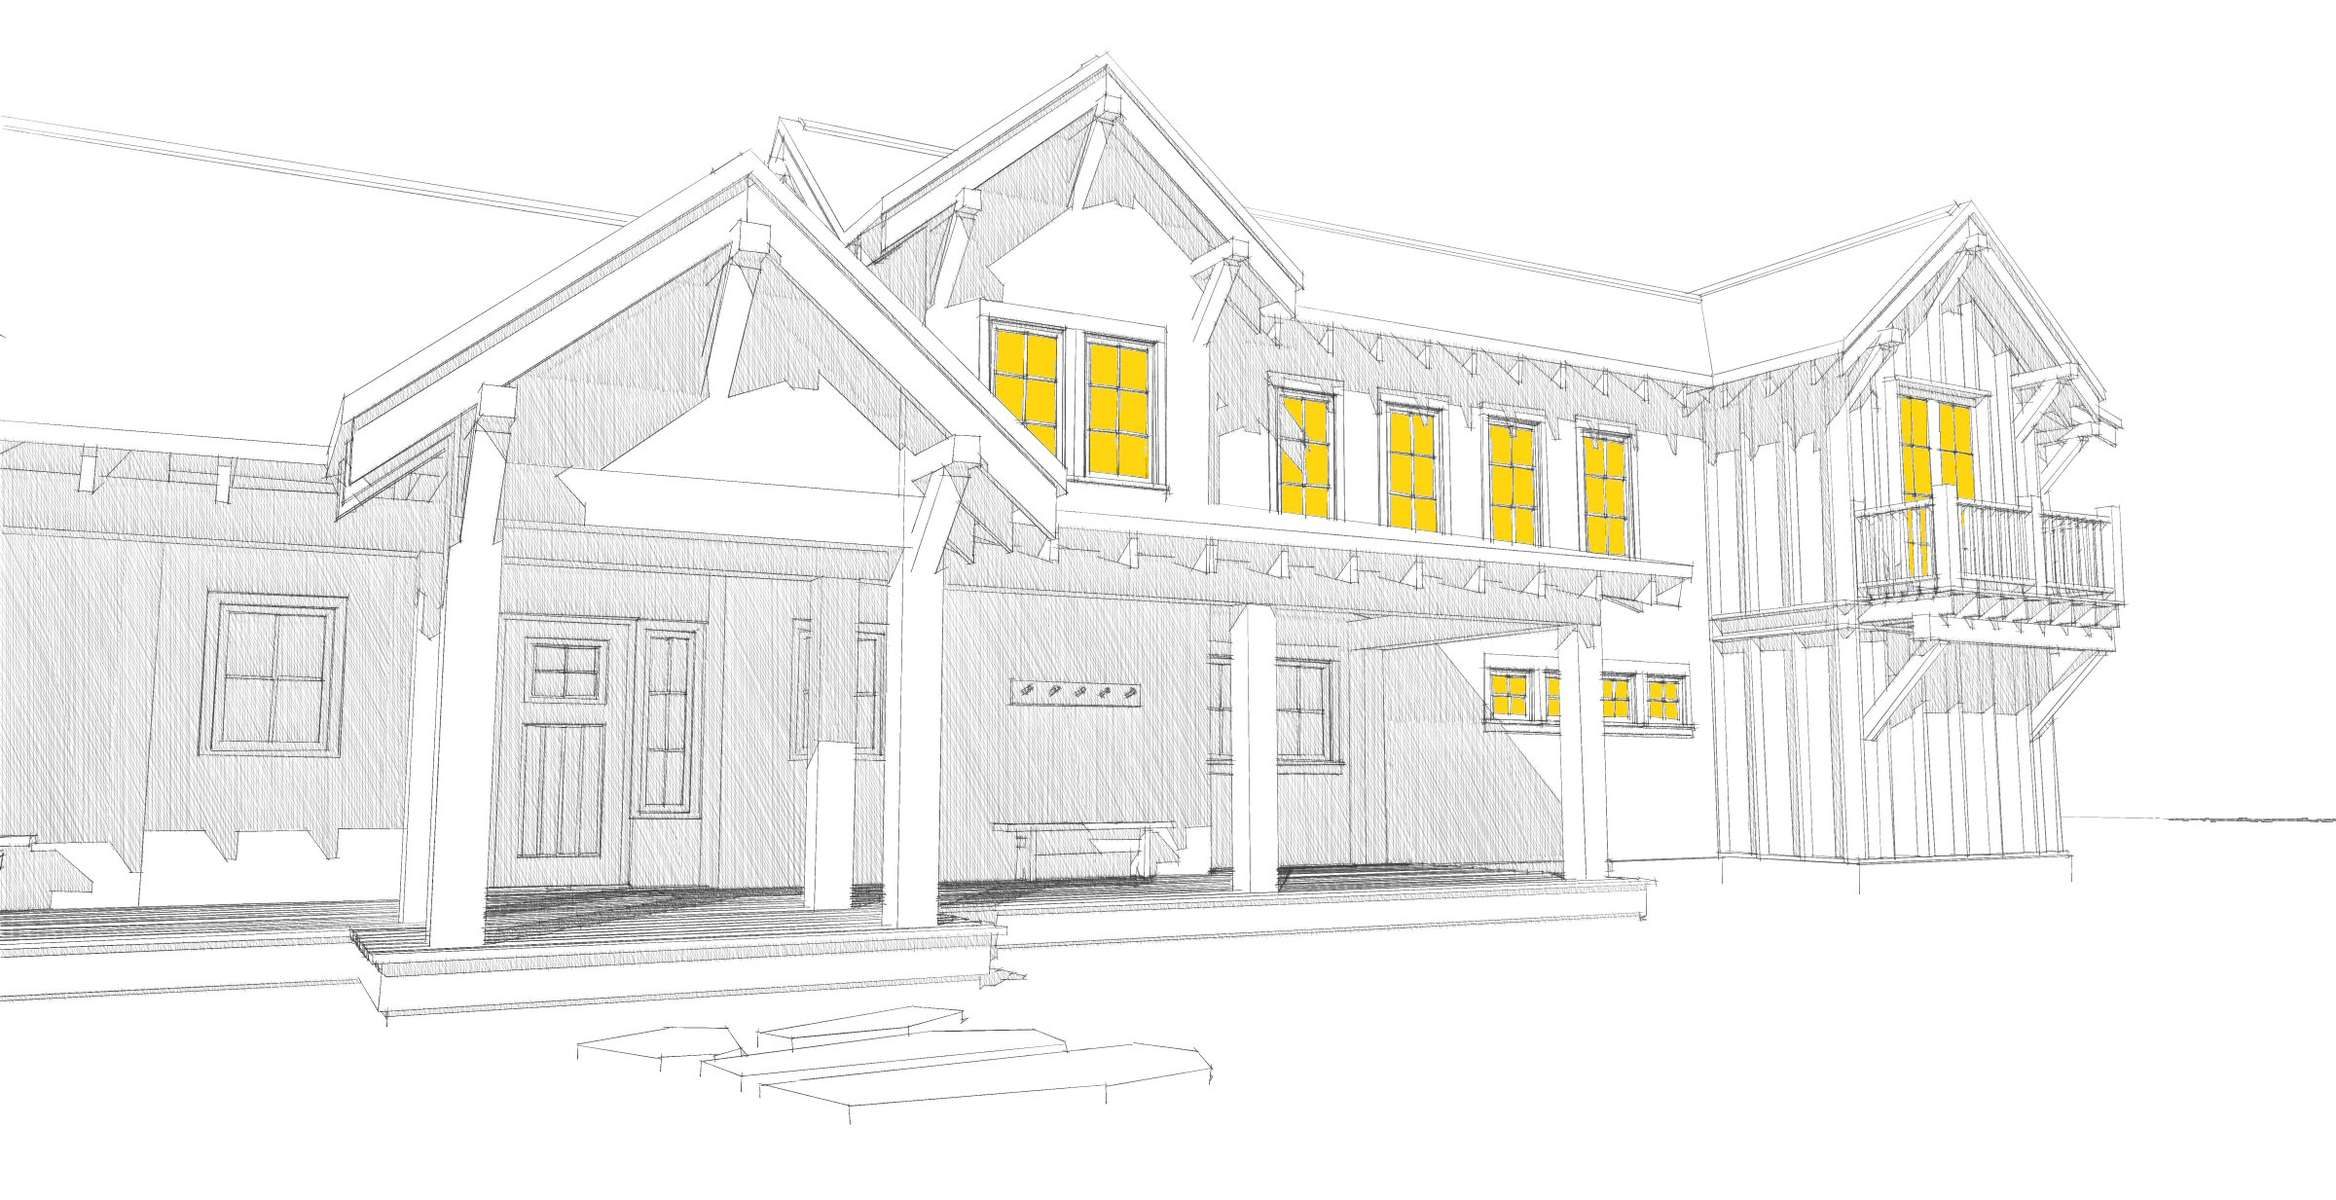 plan-west-design-firm-_-projects-in-process-643